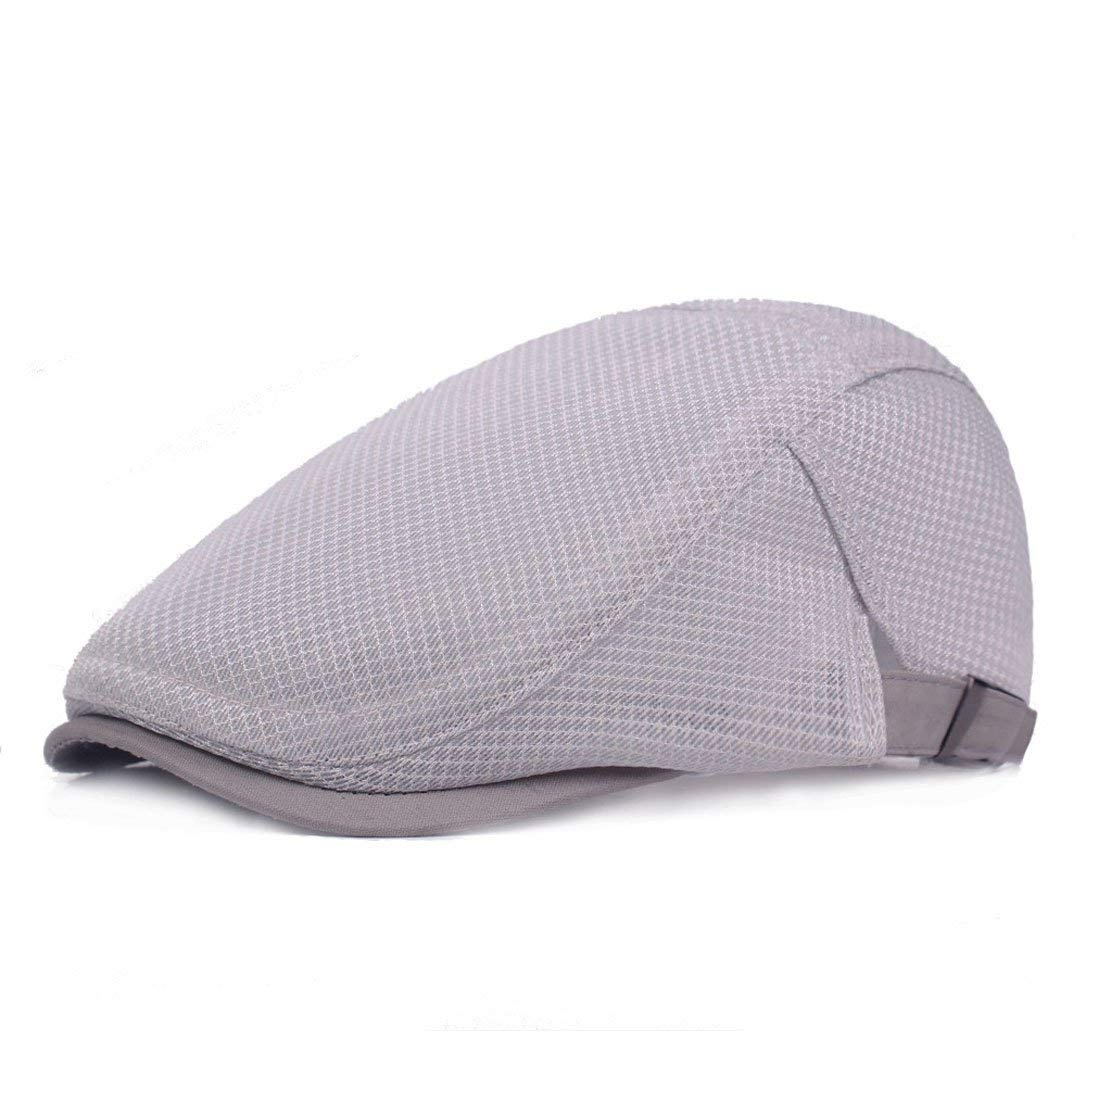 37b748f8c9c Get Quotations · Topcoco Mens Breathable mesh Cap Beret Summer Cool Ivy Cap  Cabbie Flat Cap